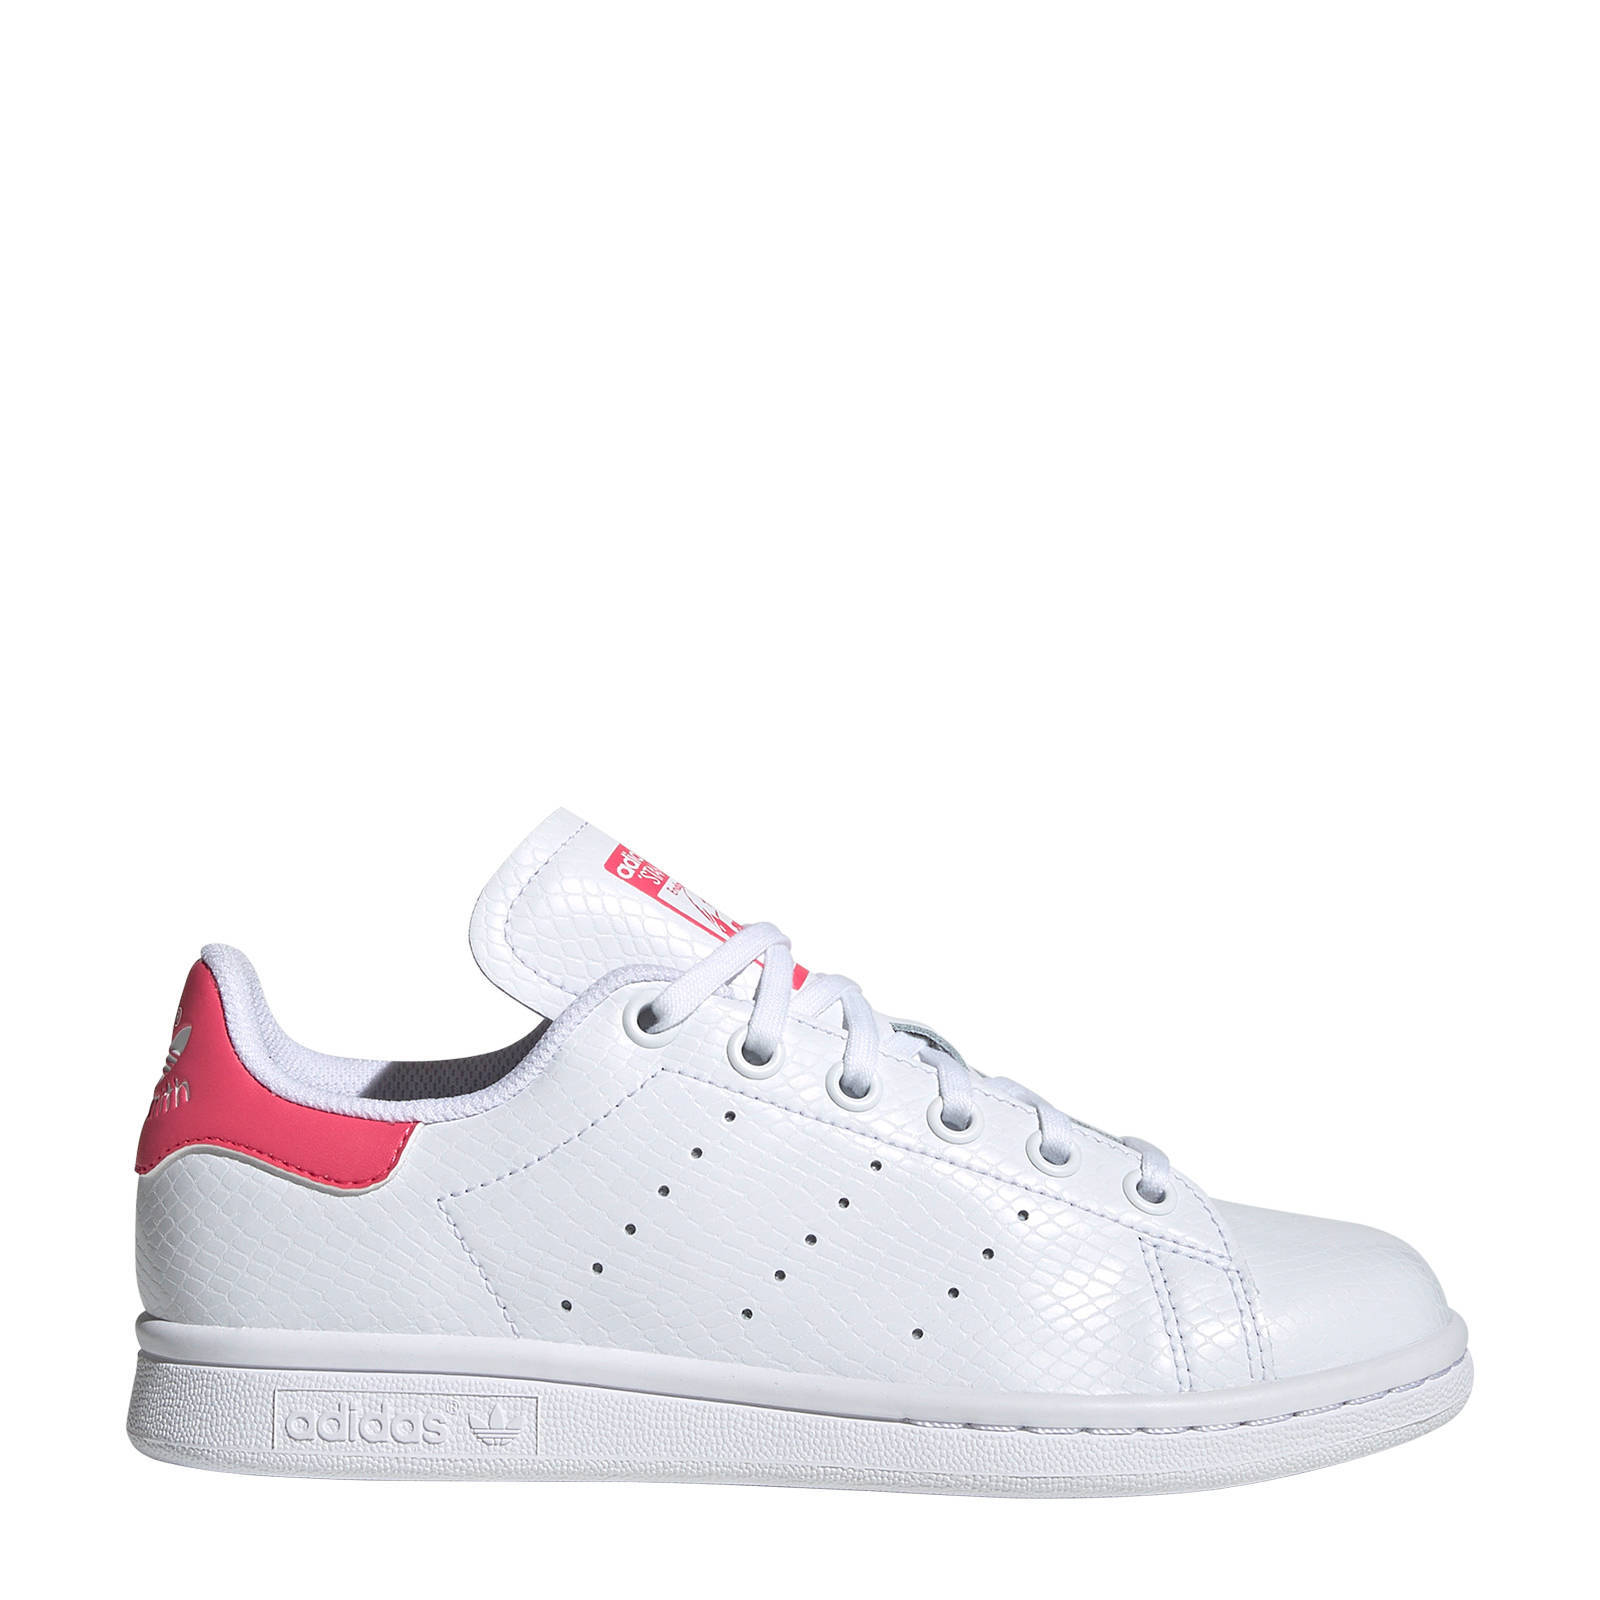 adidas originals Stan Smith J leren sneakers witroze wehkamp    adidas originals Stan Smith J leren sneakers witroze   title=  f70a7299370ce867c5dd2f4a82c1f4c2     wehkamp